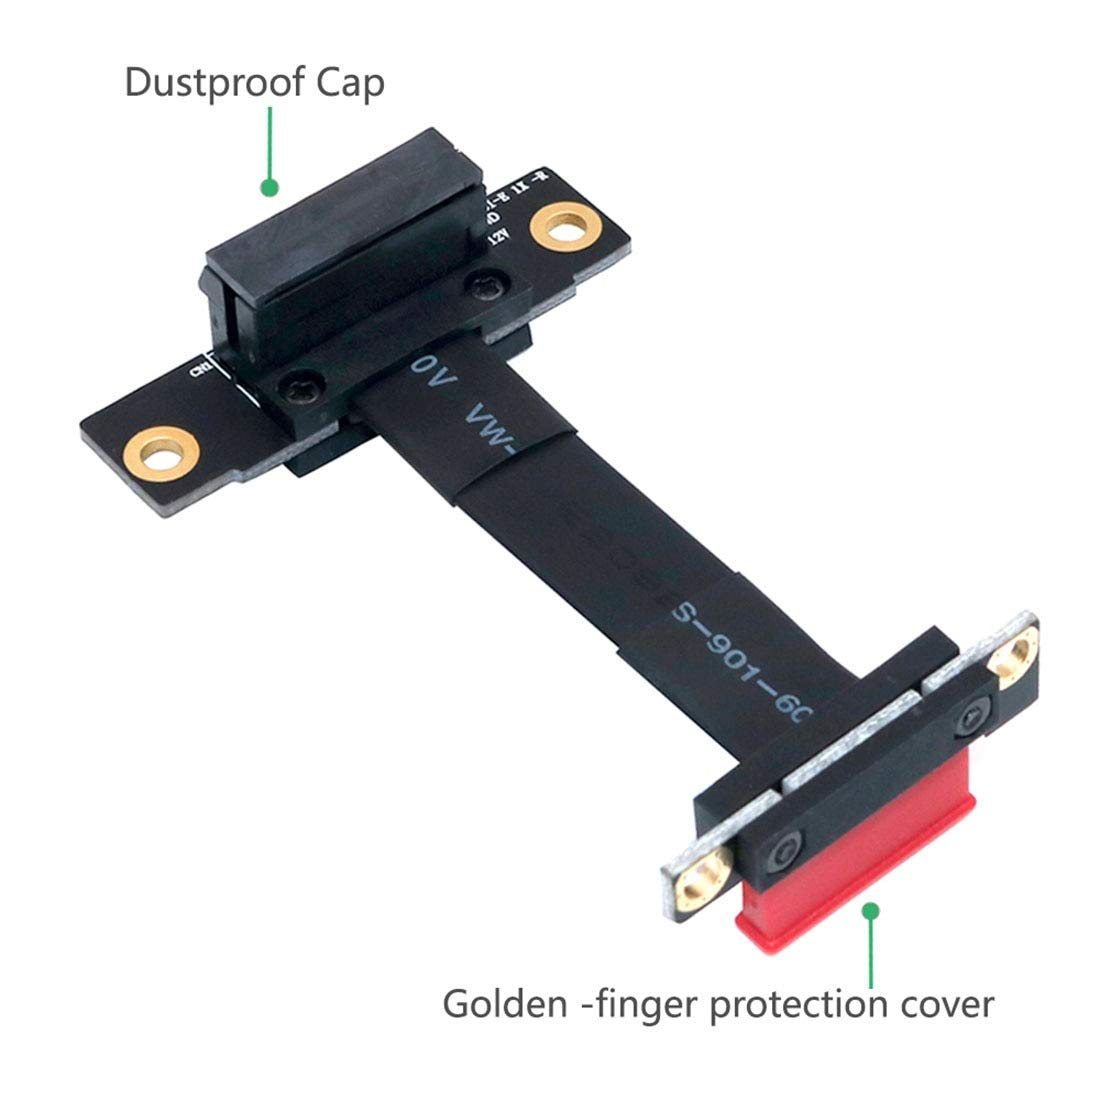 JMT PCI-E PCI Express 36PIN 1X Extension Cable Gold-Plated Dual Vertical 90 Degrees for 1U 2U ATX//BTX Chassis PC